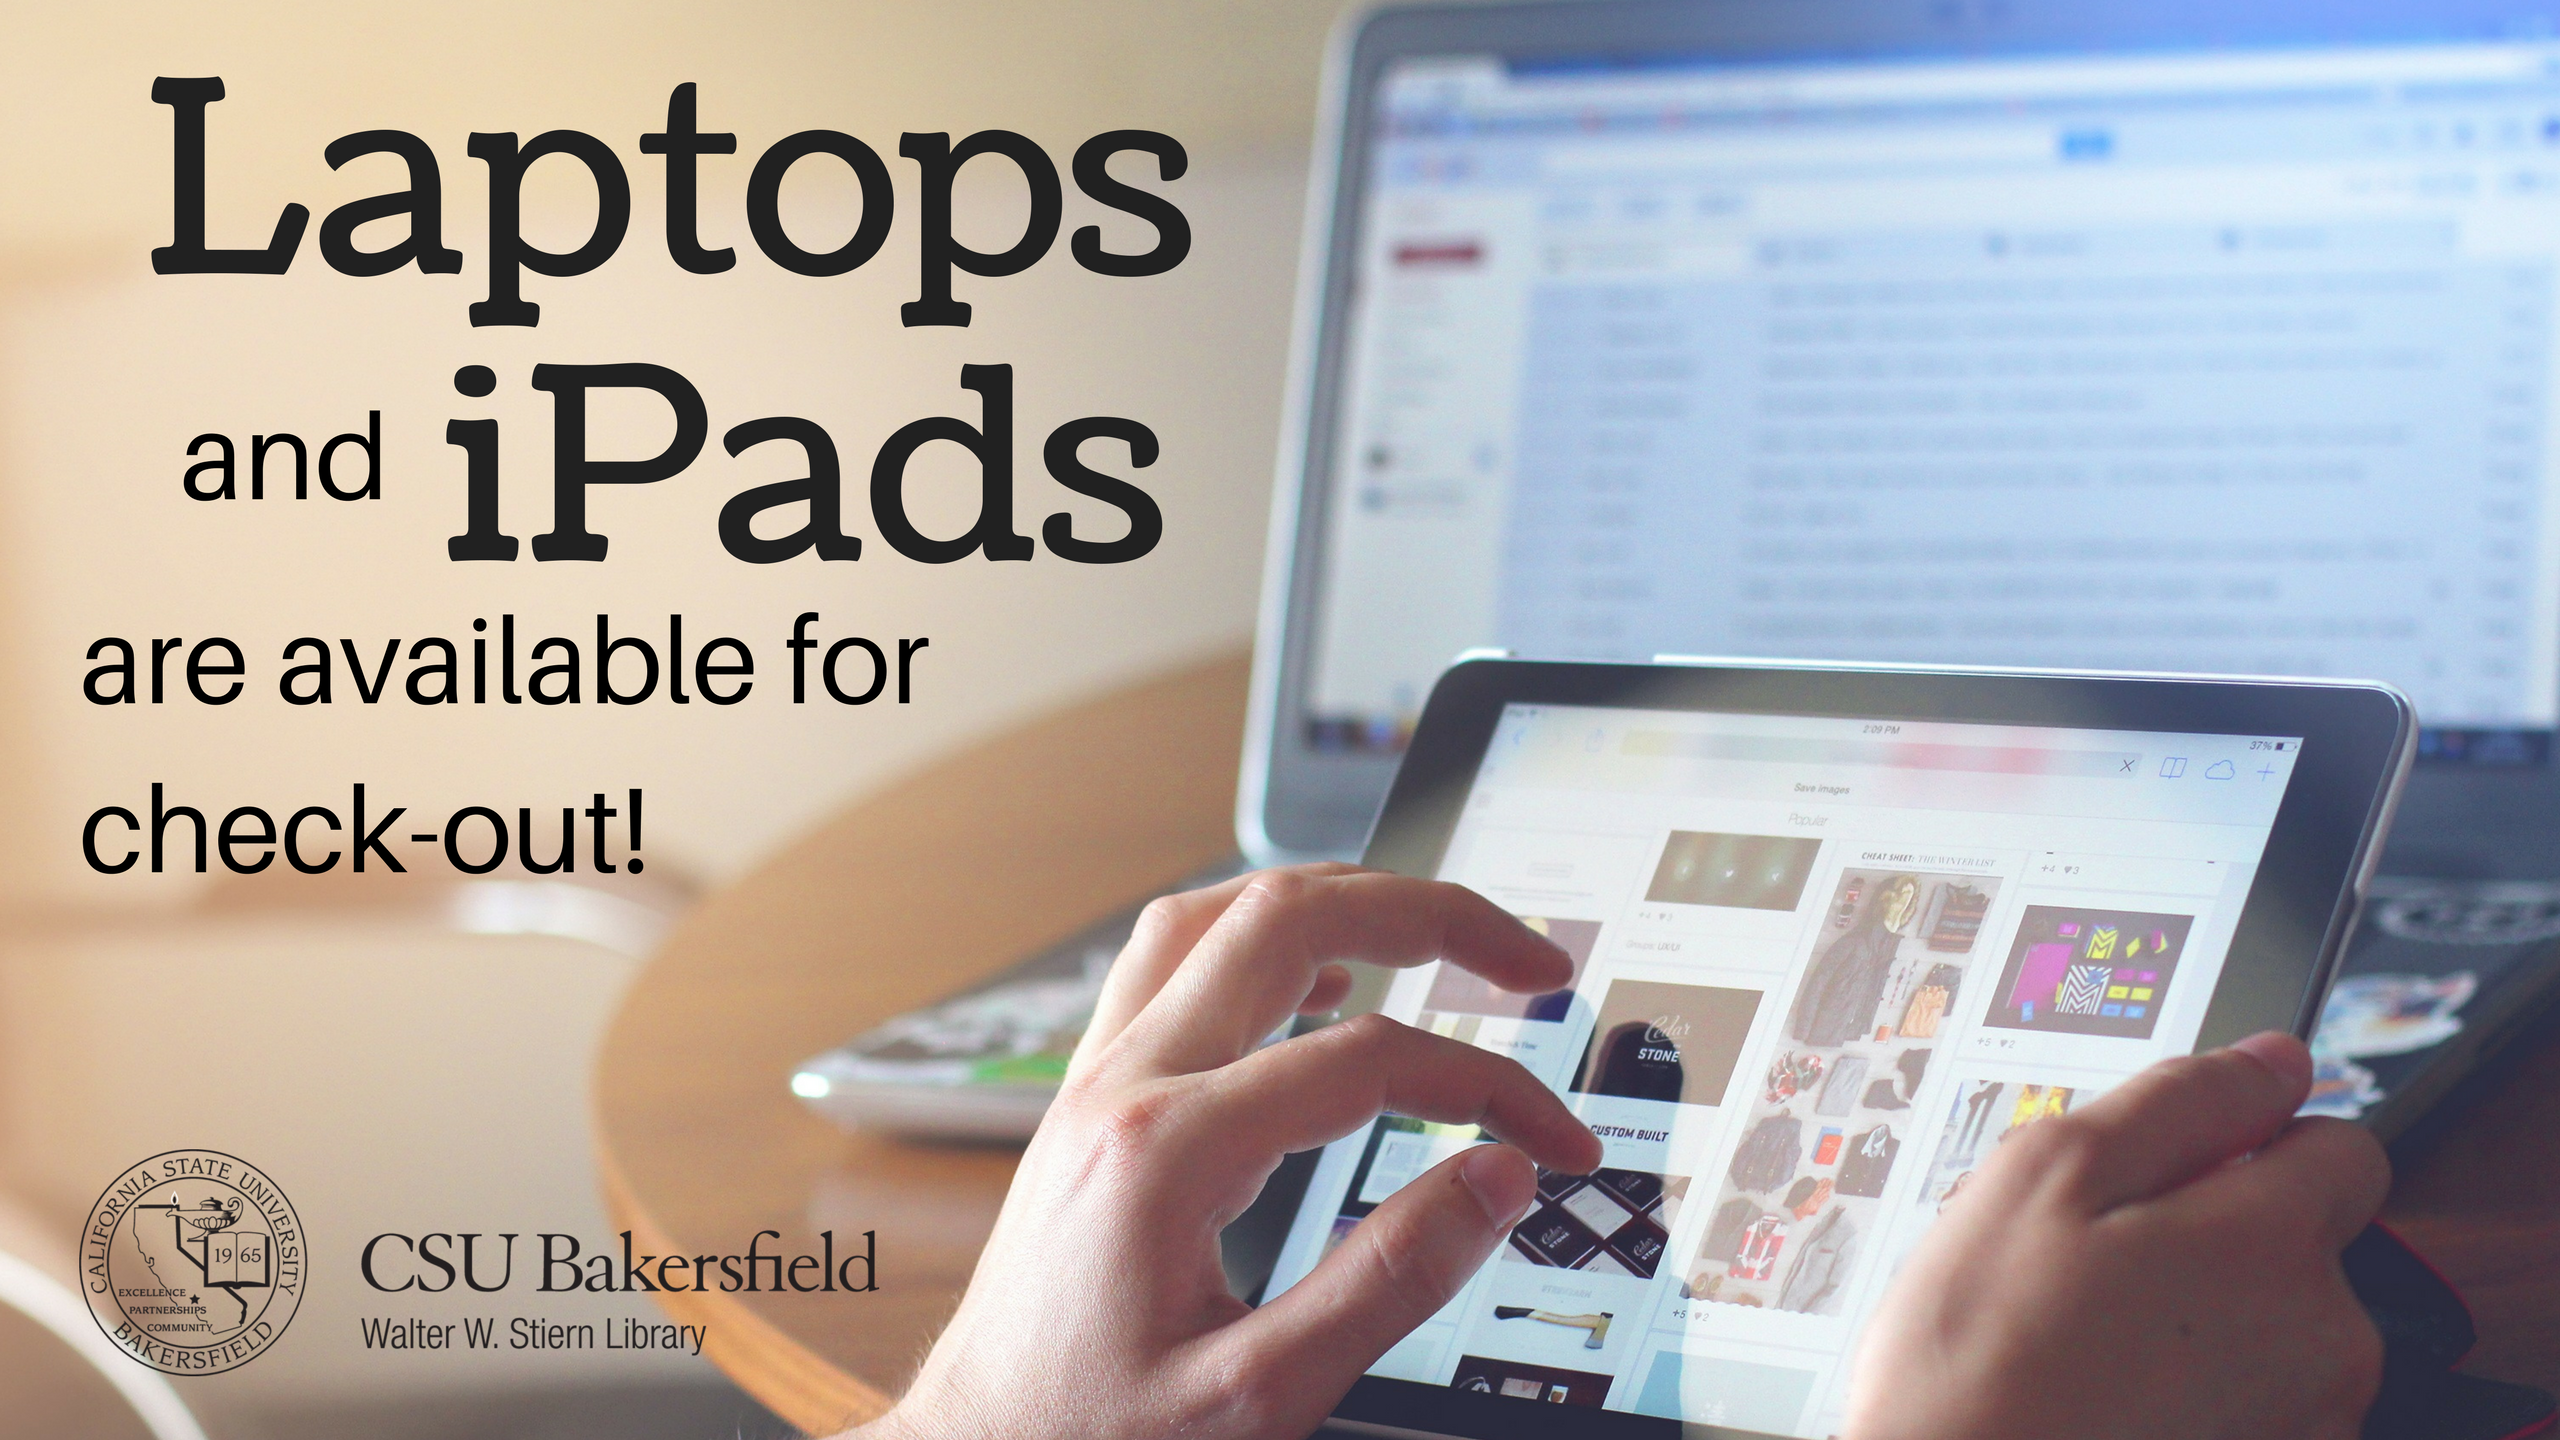 laptops and ipads available for check out